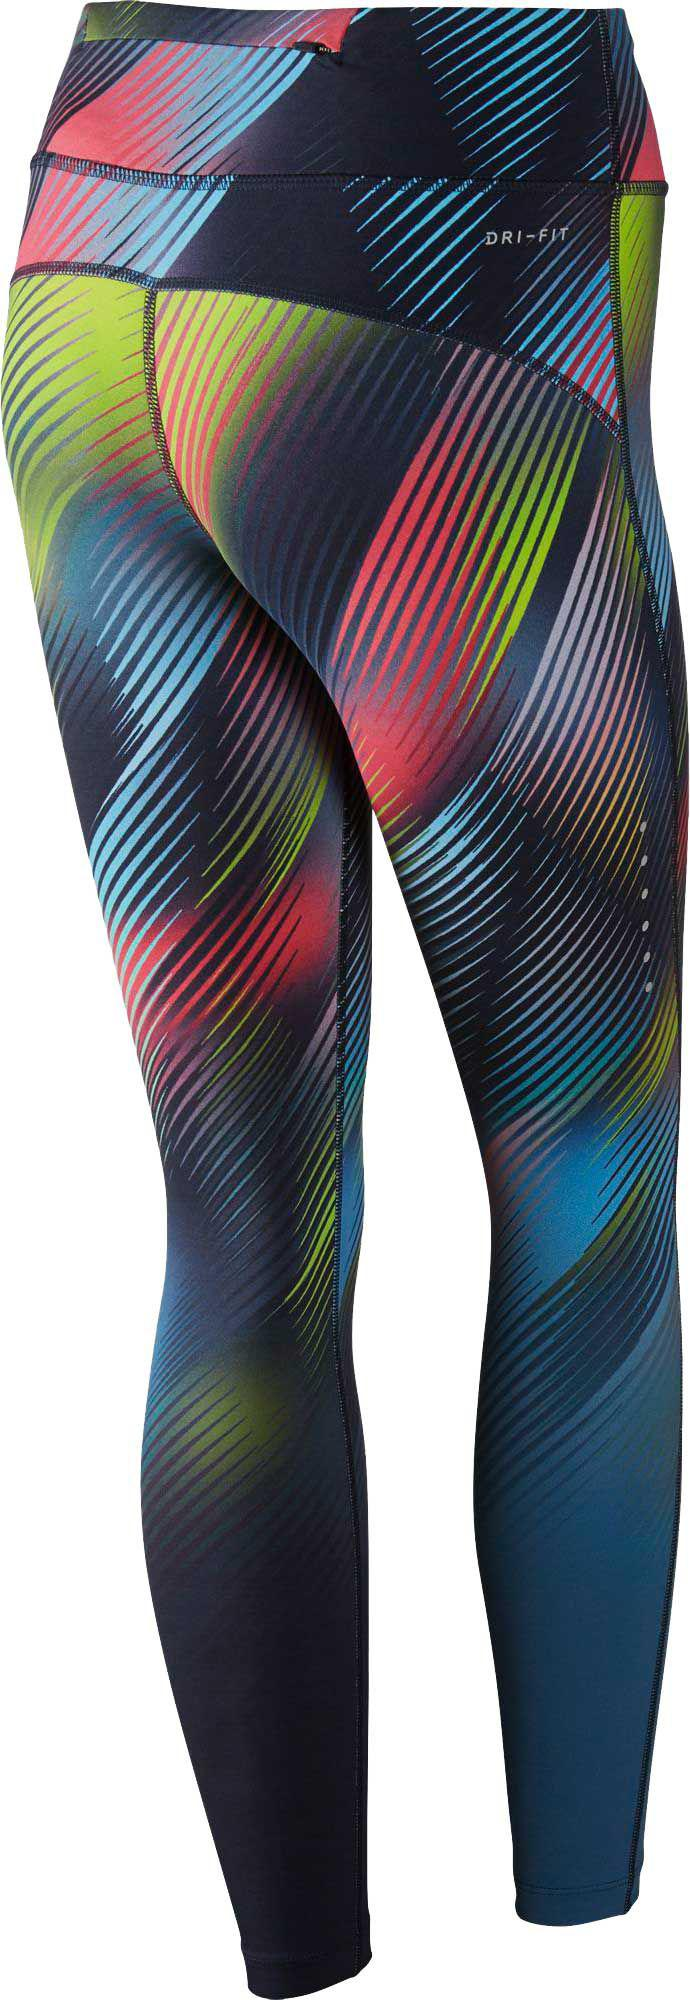 a72bb52e329 Nike - Blue Power Epic Lux Faded Printed Tights - Lyst. View fullscreen